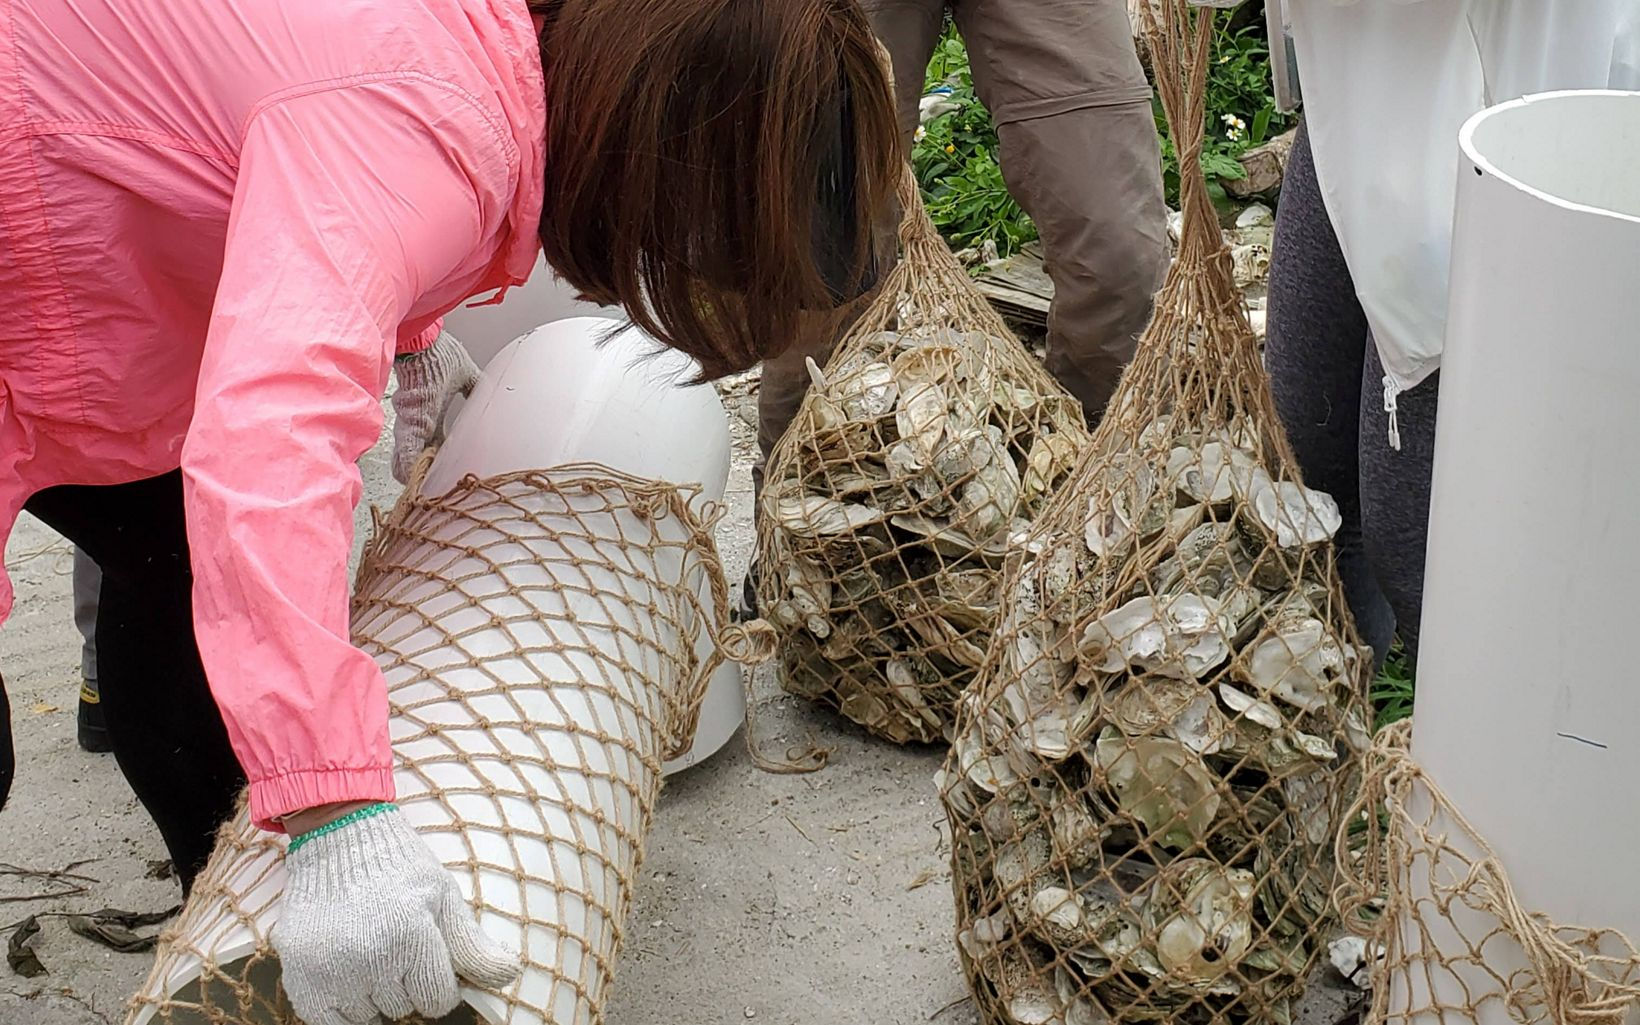 A group of people are putting oyster shells into rope bags.